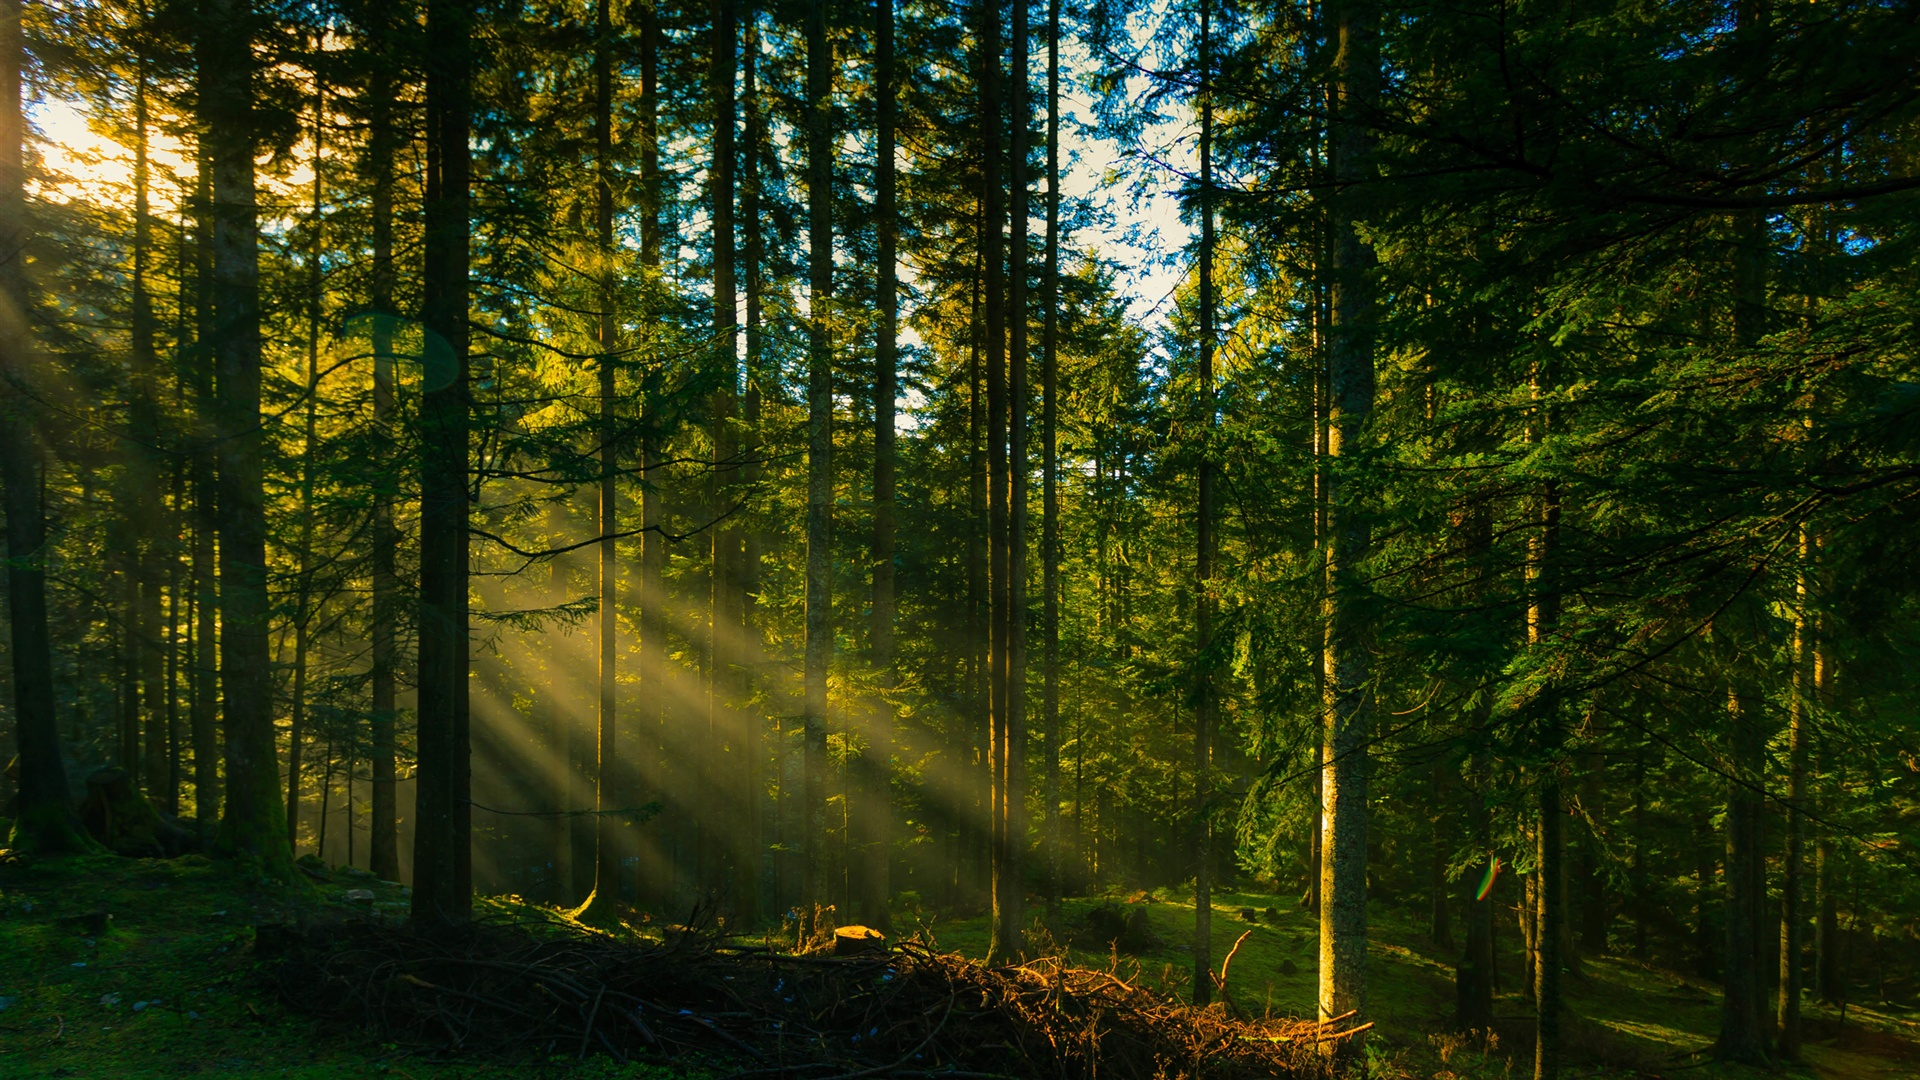 wallpaper forest trees sun rays 2560x1440 qhd picture image